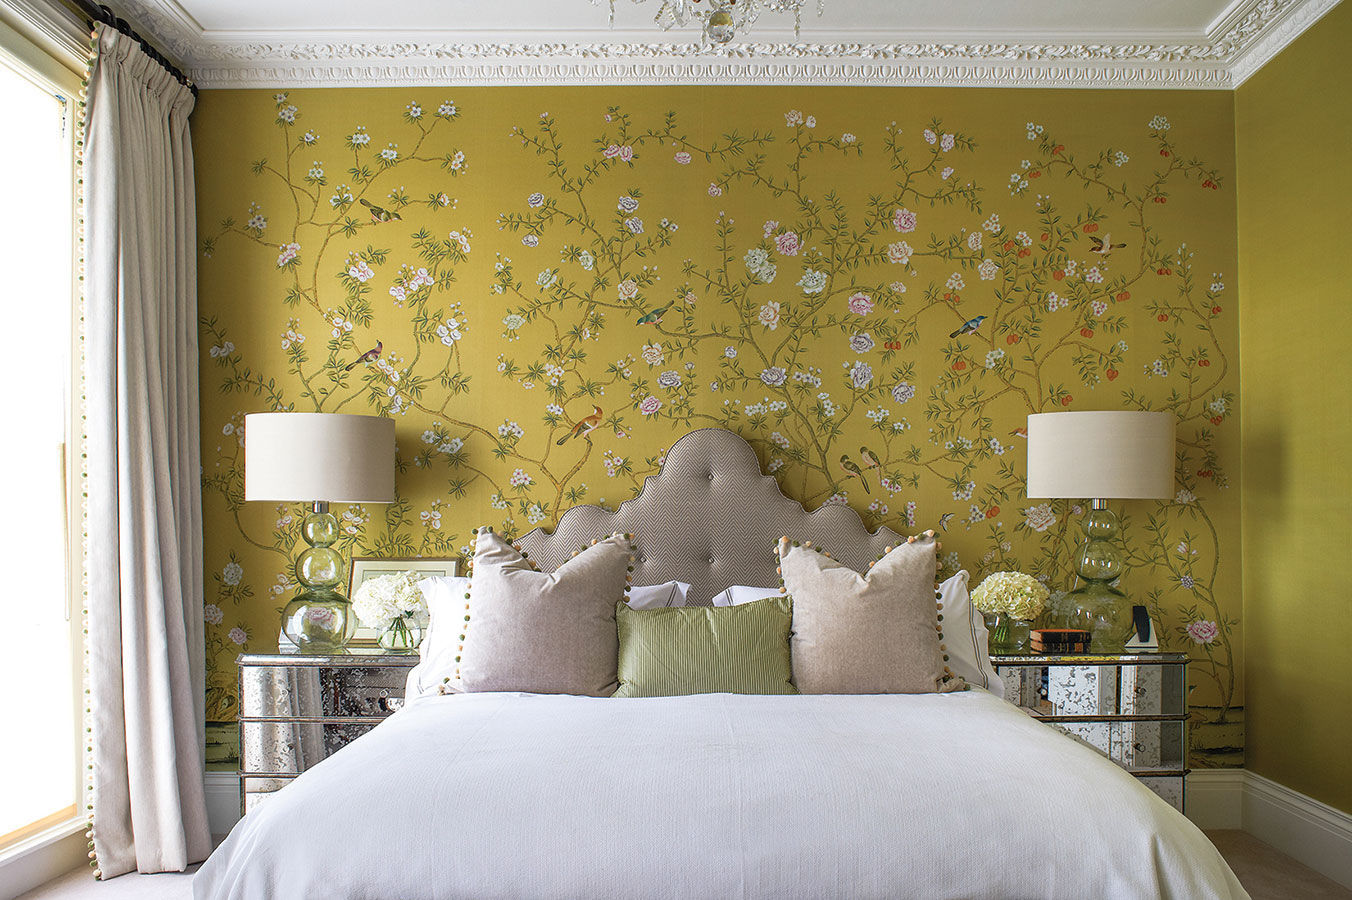 Traditional wallpaper / floral / chinoiserie / fabric look ...